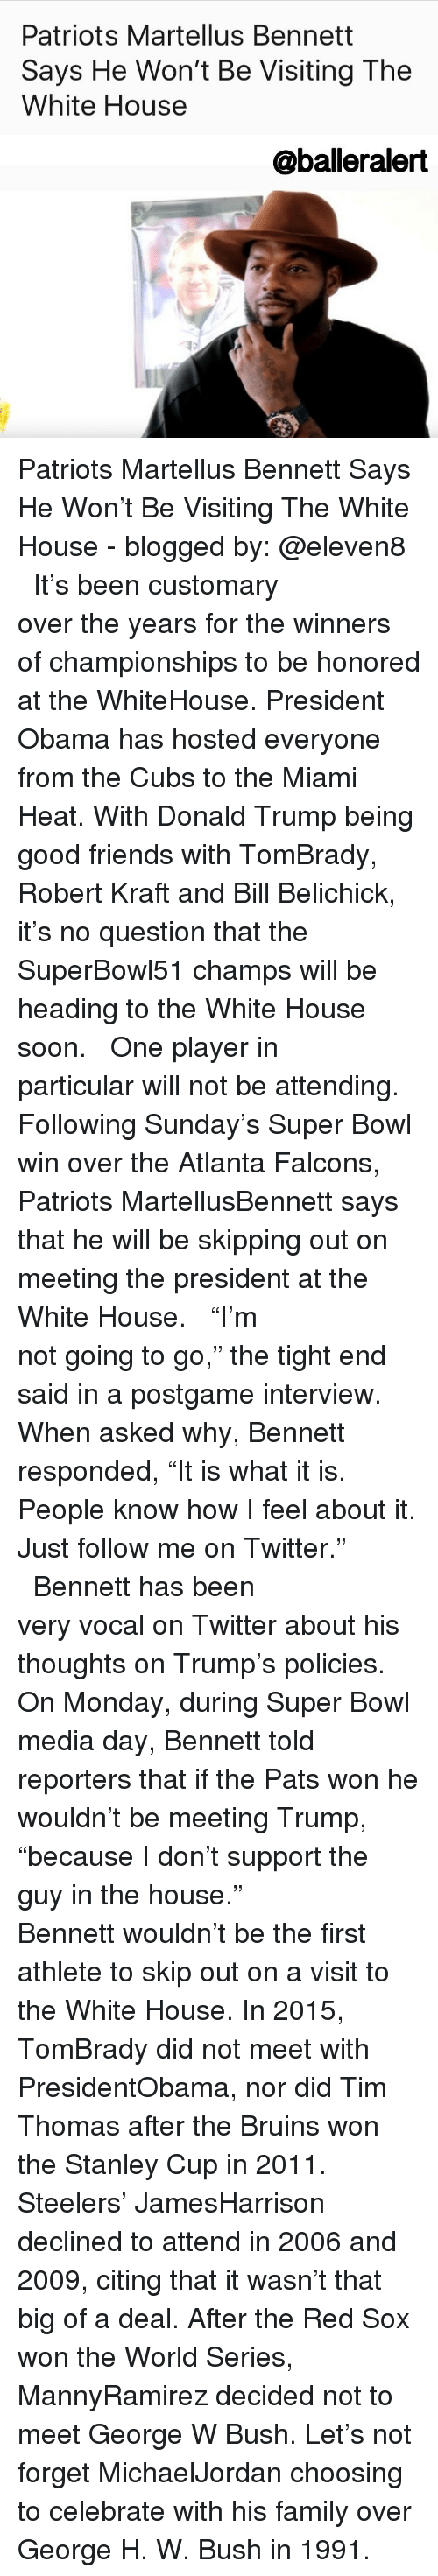 "robert kraft: Patriots Martellus Bennett  Says He Won't Be Visiting The  White House  aballeralert Patriots Martellus Bennett Says He Won't Be Visiting The White House - blogged by: @eleven8 ⠀⠀⠀⠀⠀⠀⠀⠀⠀ ⠀⠀⠀⠀⠀⠀⠀⠀⠀ It's been customary over the years for the winners of championships to be honored at the WhiteHouse. President Obama has hosted everyone from the Cubs to the Miami Heat. With Donald Trump being good friends with TomBrady, Robert Kraft and Bill Belichick, it's no question that the SuperBowl51 champs will be heading to the White House soon. ⠀⠀⠀⠀⠀⠀⠀⠀⠀ ⠀⠀⠀⠀⠀⠀⠀⠀⠀ One player in particular will not be attending. Following Sunday's Super Bowl win over the Atlanta Falcons, Patriots MartellusBennett says that he will be skipping out on meeting the president at the White House. ⠀⠀⠀⠀⠀⠀⠀⠀⠀ ⠀⠀⠀⠀⠀⠀⠀⠀⠀ ""I'm not going to go,"" the tight end said in a postgame interview. When asked why, Bennett responded, ""It is what it is. People know how I feel about it. Just follow me on Twitter."" ⠀⠀⠀⠀⠀⠀⠀⠀⠀ ⠀⠀⠀⠀⠀⠀⠀⠀⠀ Bennett has been very vocal on Twitter about his thoughts on Trump's policies. On Monday, during Super Bowl media day, Bennett told reporters that if the Pats won he wouldn't be meeting Trump, ""because I don't support the guy in the house."" ⠀⠀⠀⠀⠀⠀⠀⠀⠀ ⠀⠀⠀⠀⠀⠀⠀⠀⠀ Bennett wouldn't be the first athlete to skip out on a visit to the White House. In 2015, TomBrady did not meet with PresidentObama, nor did Tim Thomas after the Bruins won the Stanley Cup in 2011. Steelers' JamesHarrison declined to attend in 2006 and 2009, citing that it wasn't that big of a deal. After the Red Sox won the World Series, MannyRamirez decided not to meet George W Bush. Let's not forget MichaelJordan choosing to celebrate with his family over George H. W. Bush in 1991."